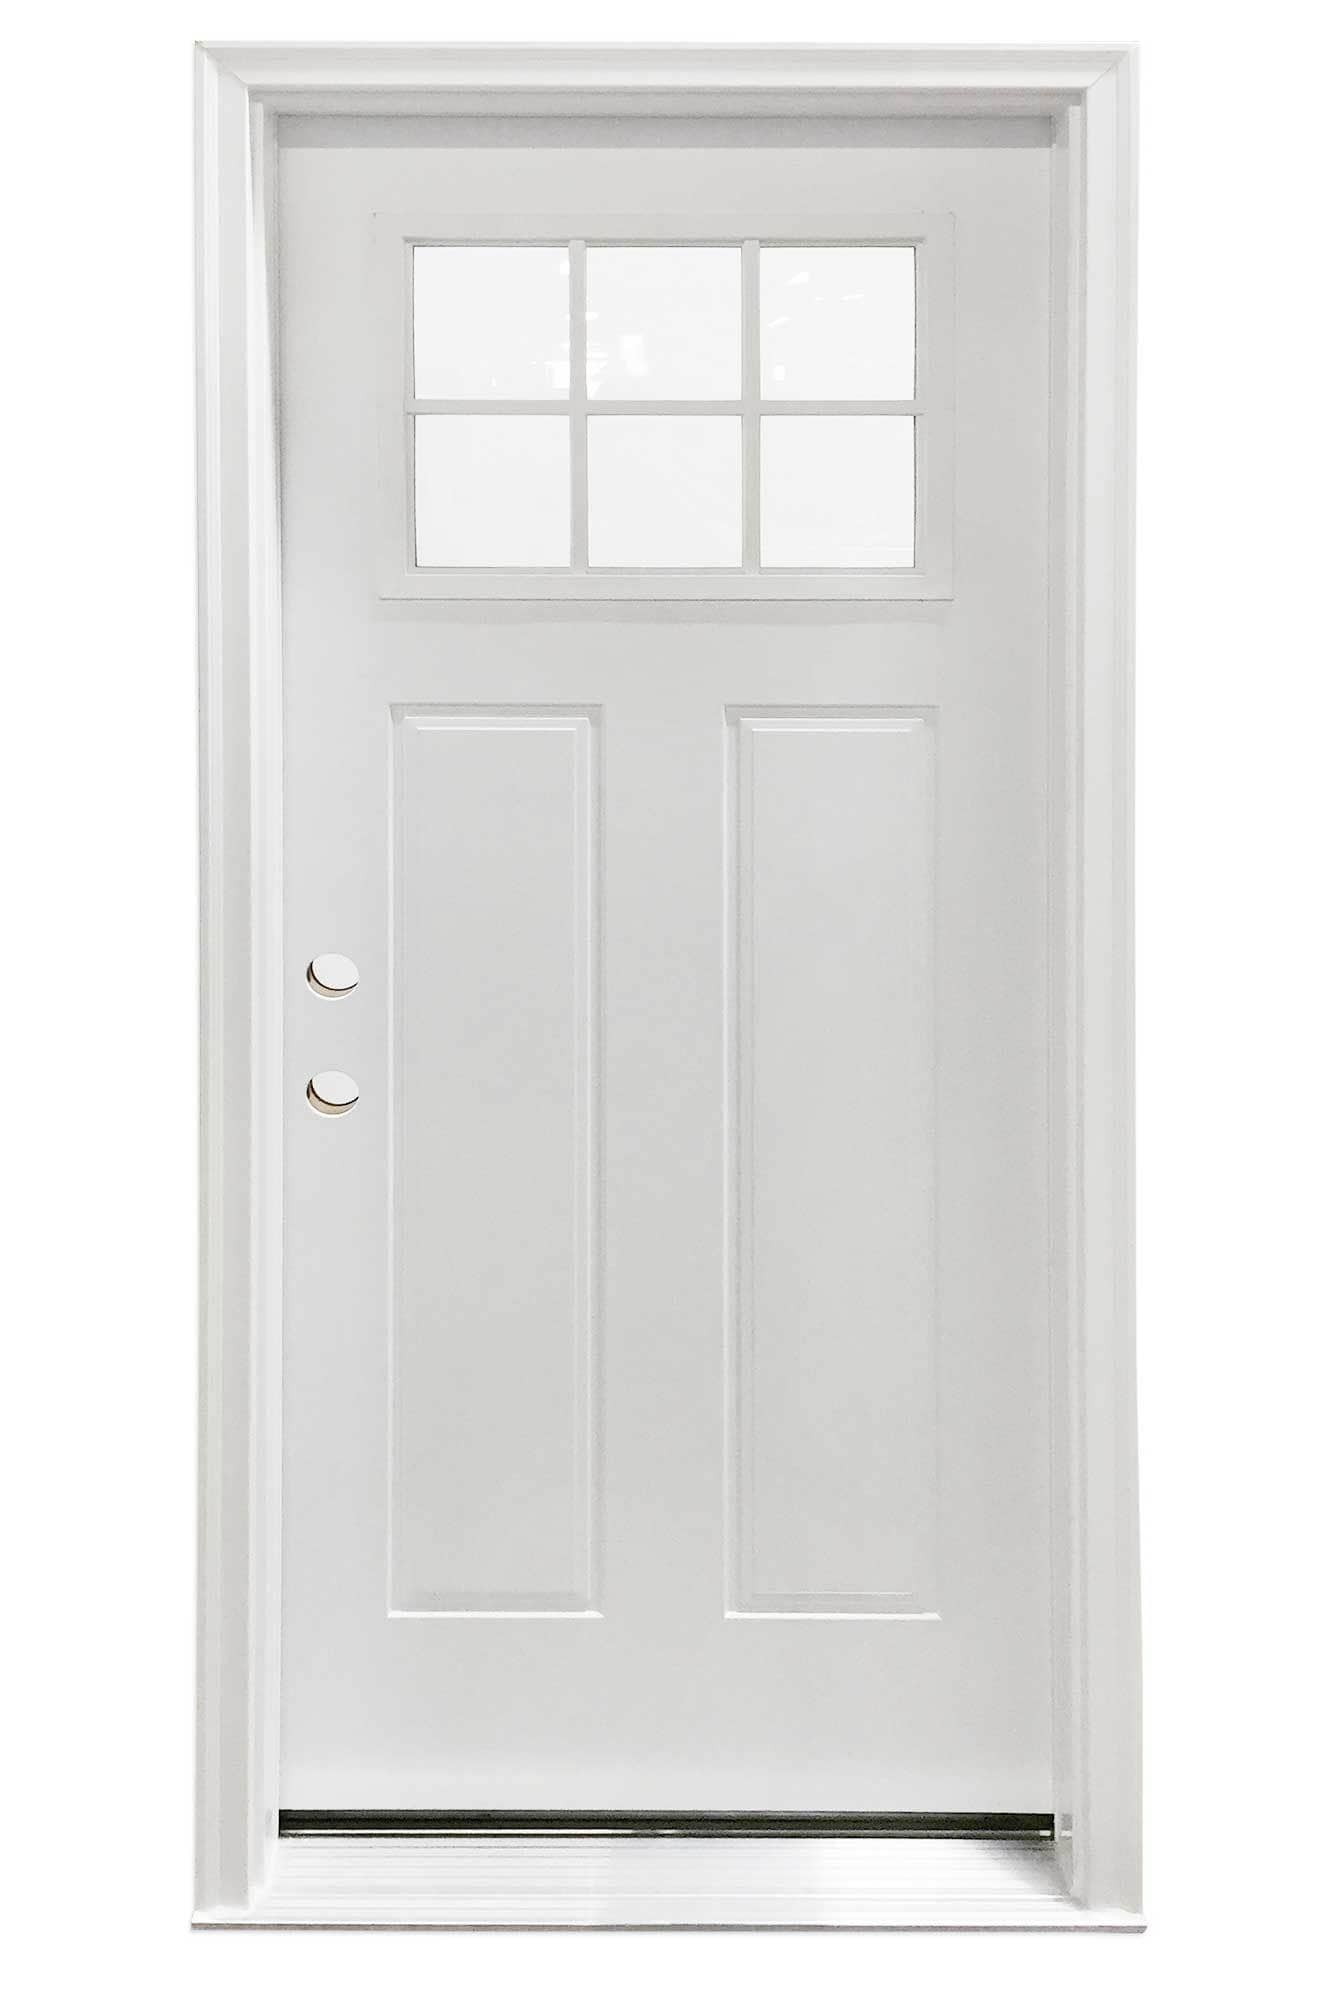 2000 #5D4B40 New Concept Exterior Doors Pre Hung Steel Craftsman Collection White  wallpaper Pre Hung Steel Doors 44751330